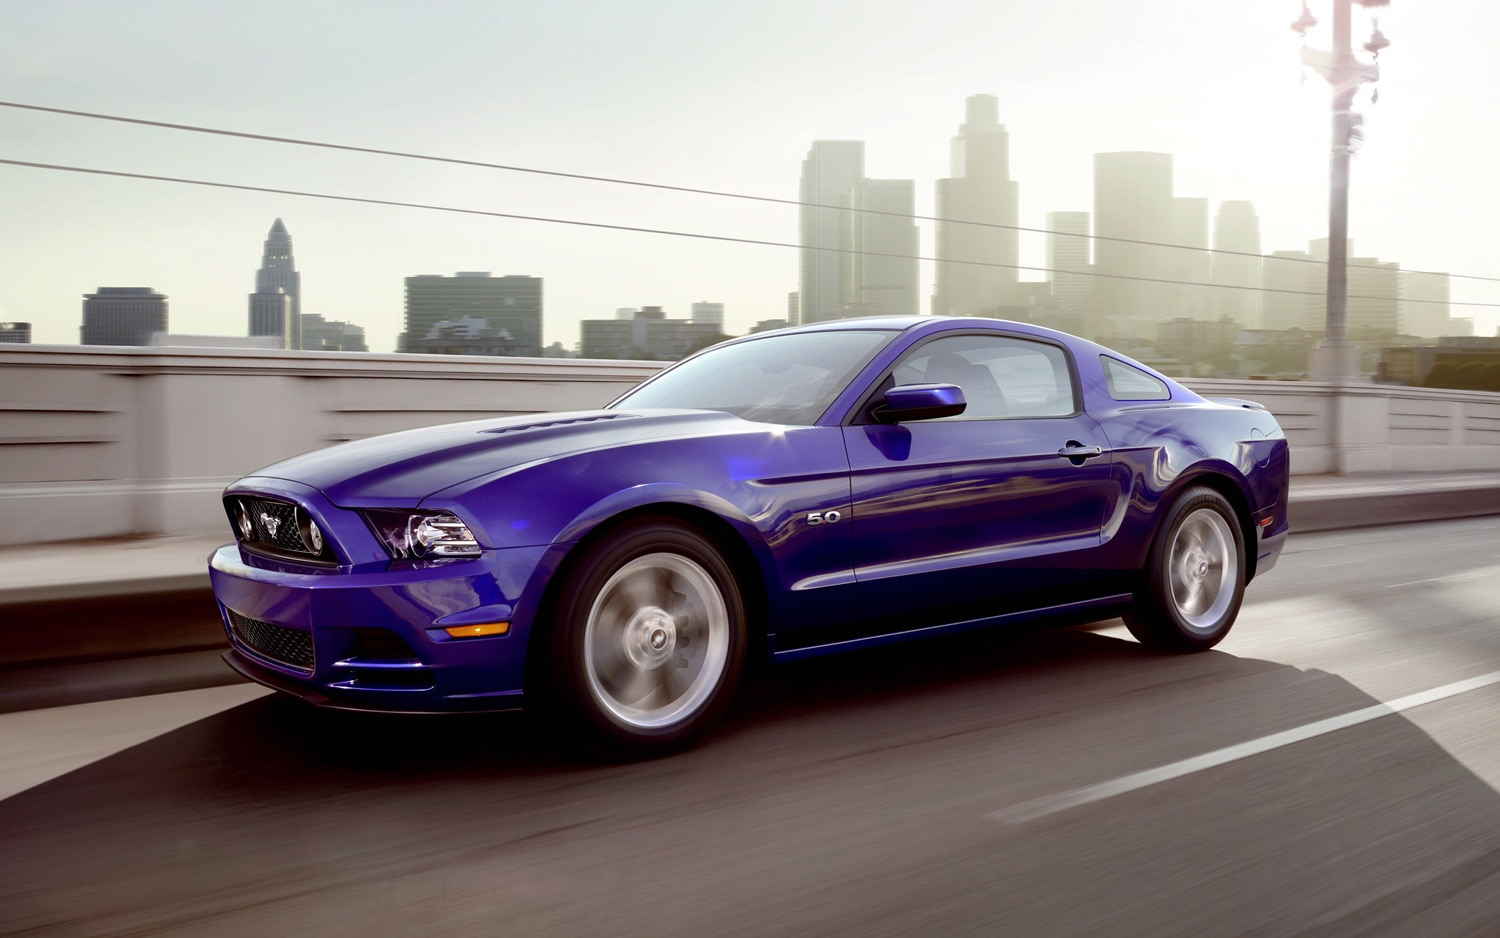 2014 Ford Mustang GT Front Three Quarter 21